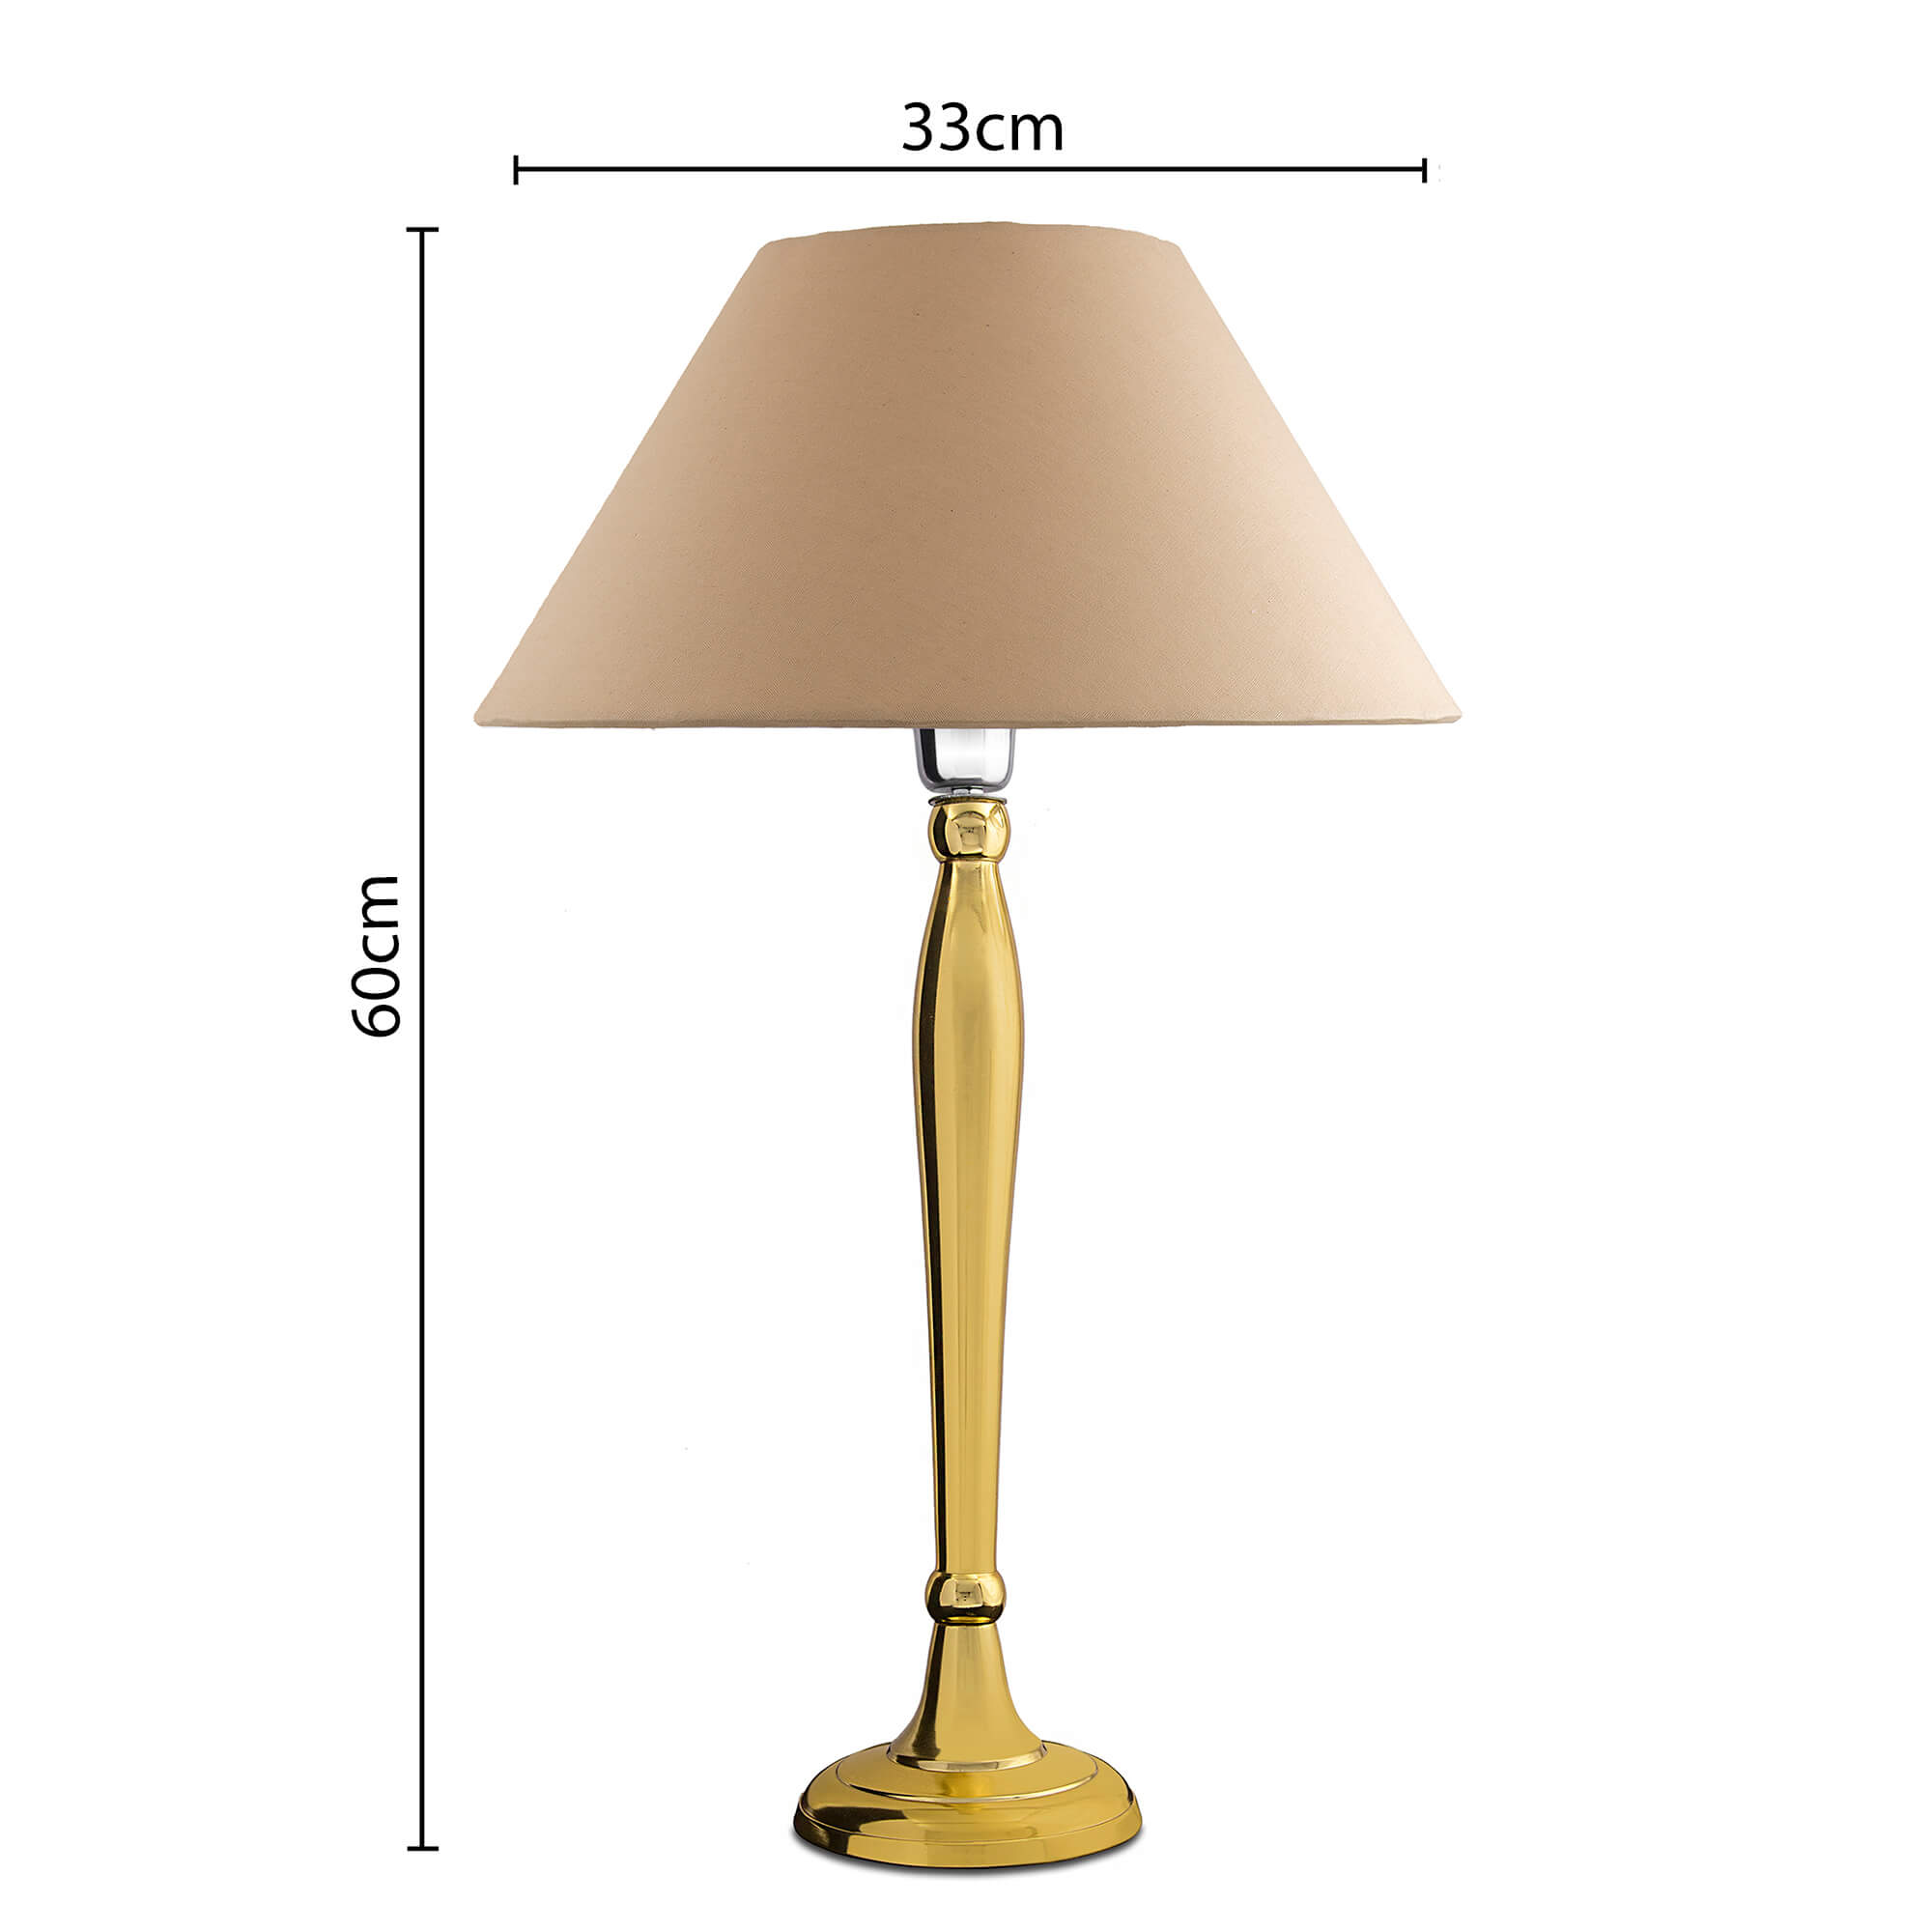 Royal Ovoid Gold Brushed Lamp with Golden Shade